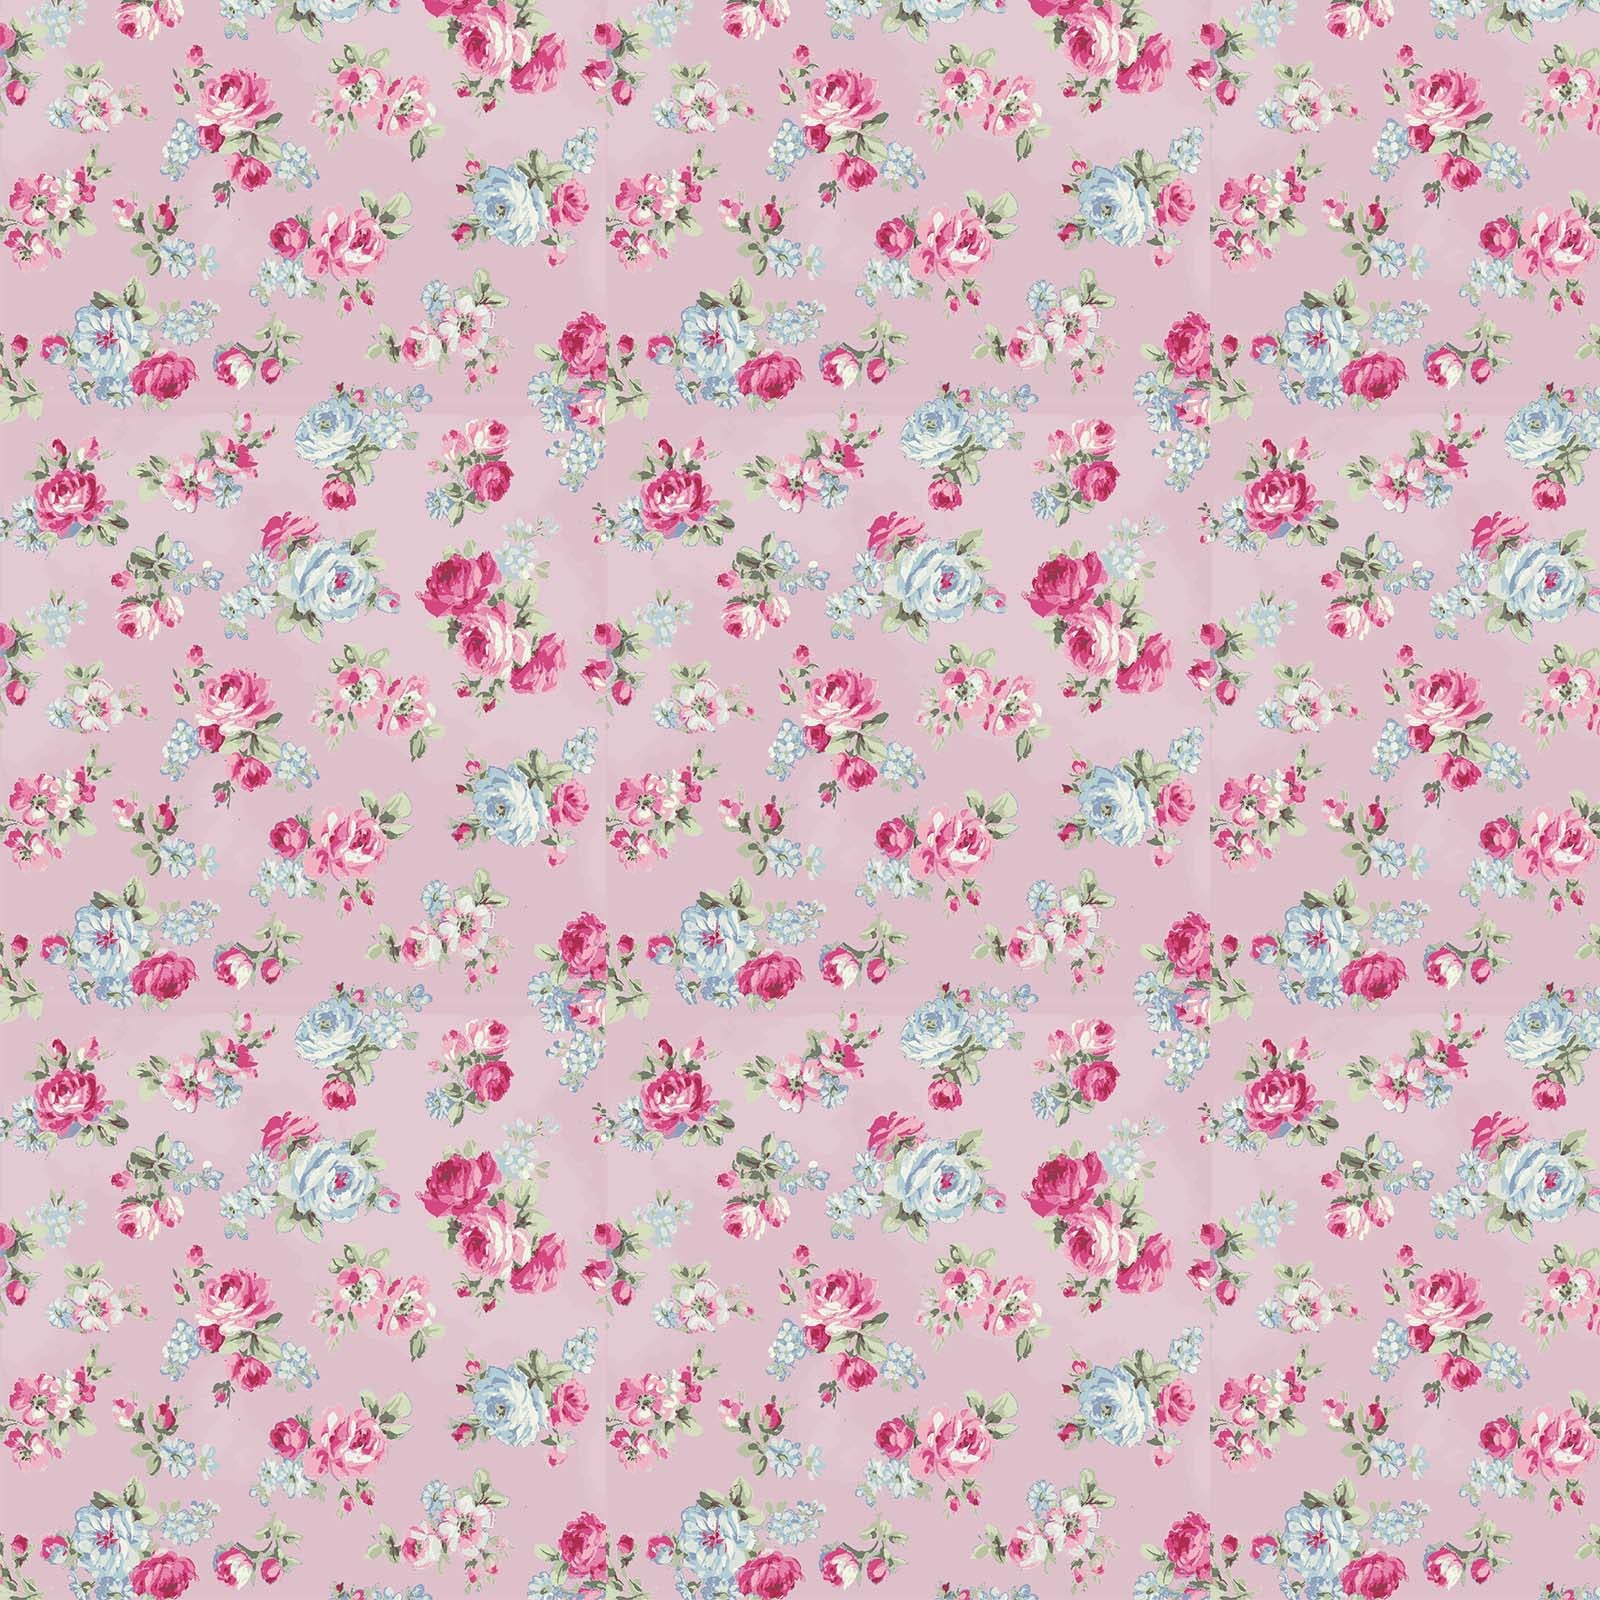 Ruru Rose Bouquet in Paris cotton fabric by Quilt Gate Ru2370-15C Small Roses on Pink